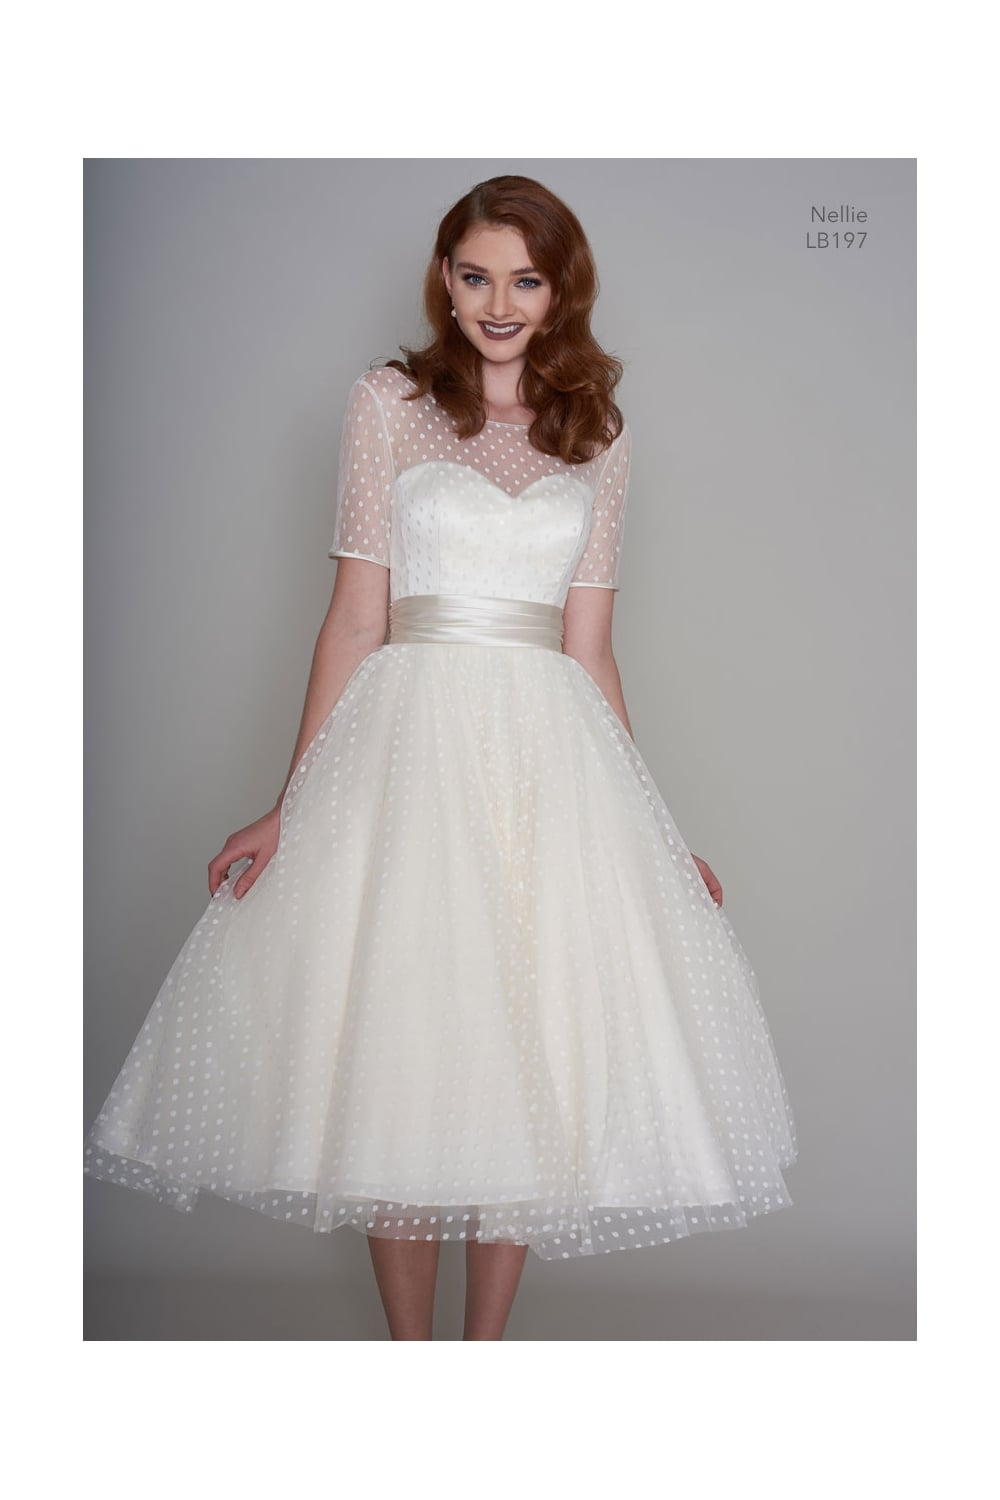 Lb197 nellie 1950s tea length polka dot short vintage for Vintage wedding dresses tea length